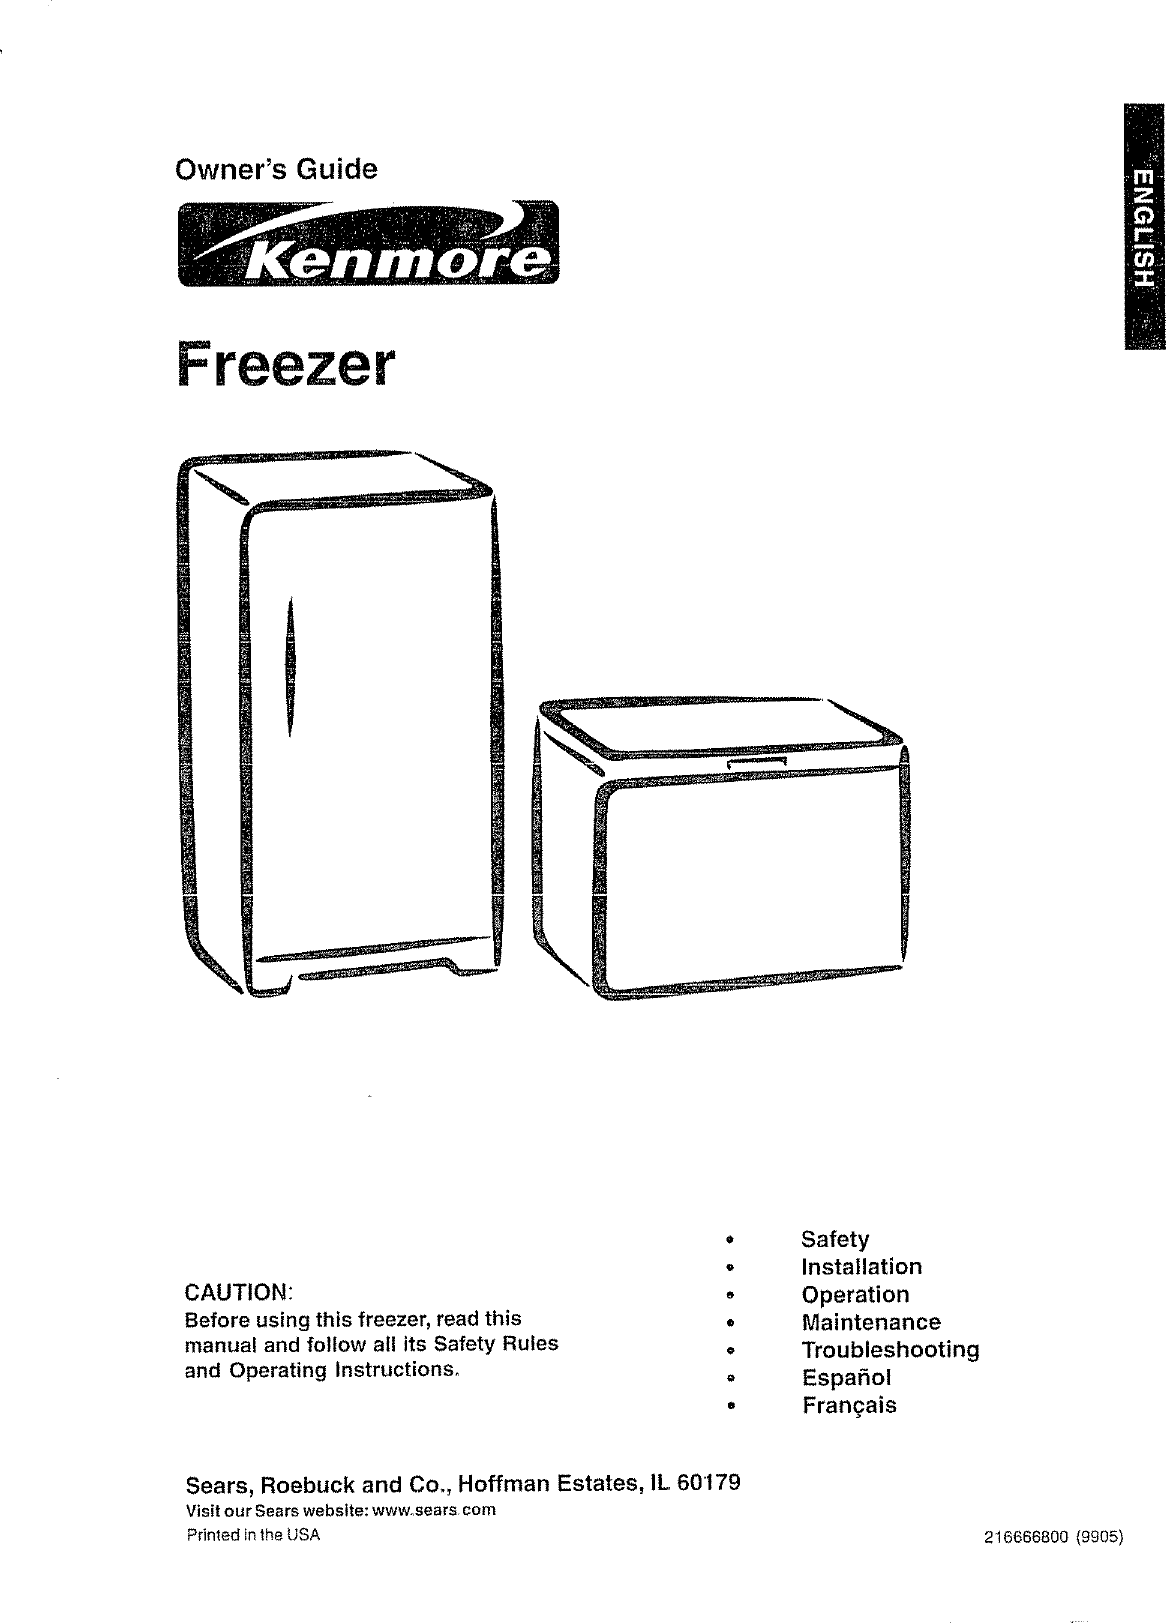 Kenmore 25318331891 User Manual Chest Freezer Manuals And Guides Wiring Diagram Freezerless Refrigerator L0706478